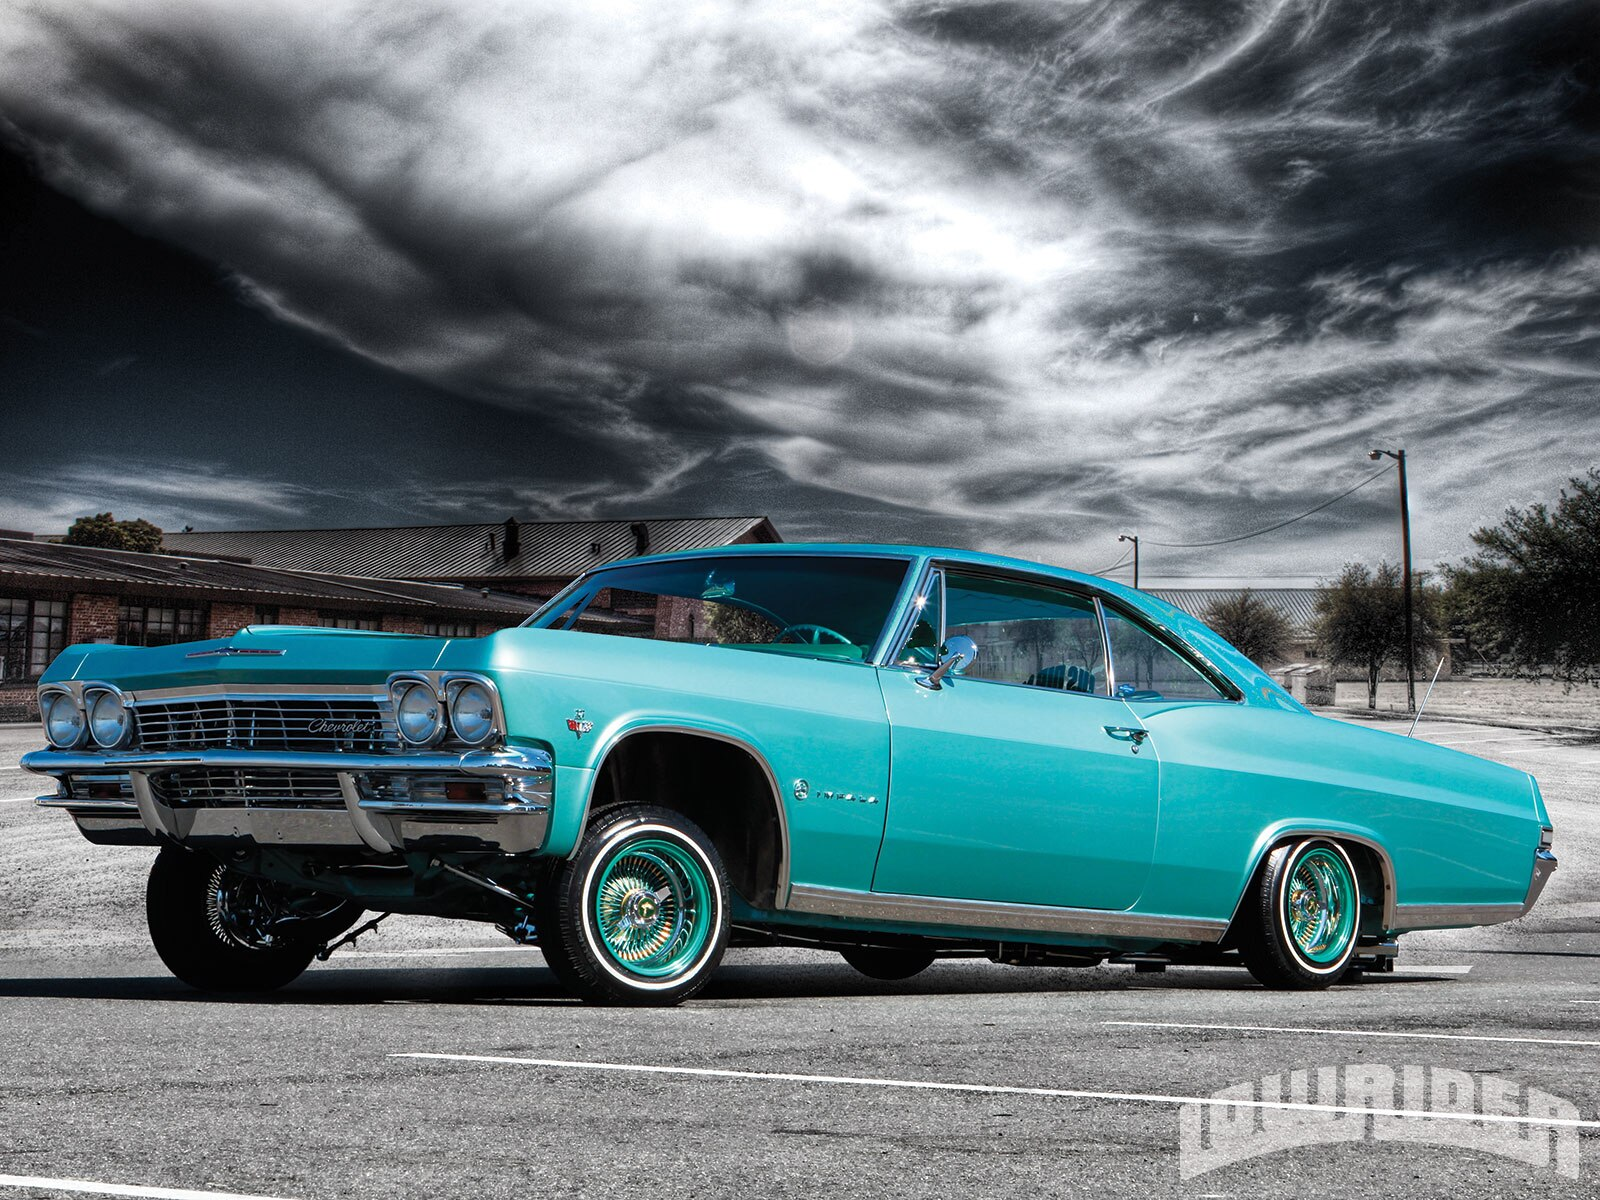 1305-1965-chevrolet-impala-front-left-side-view2